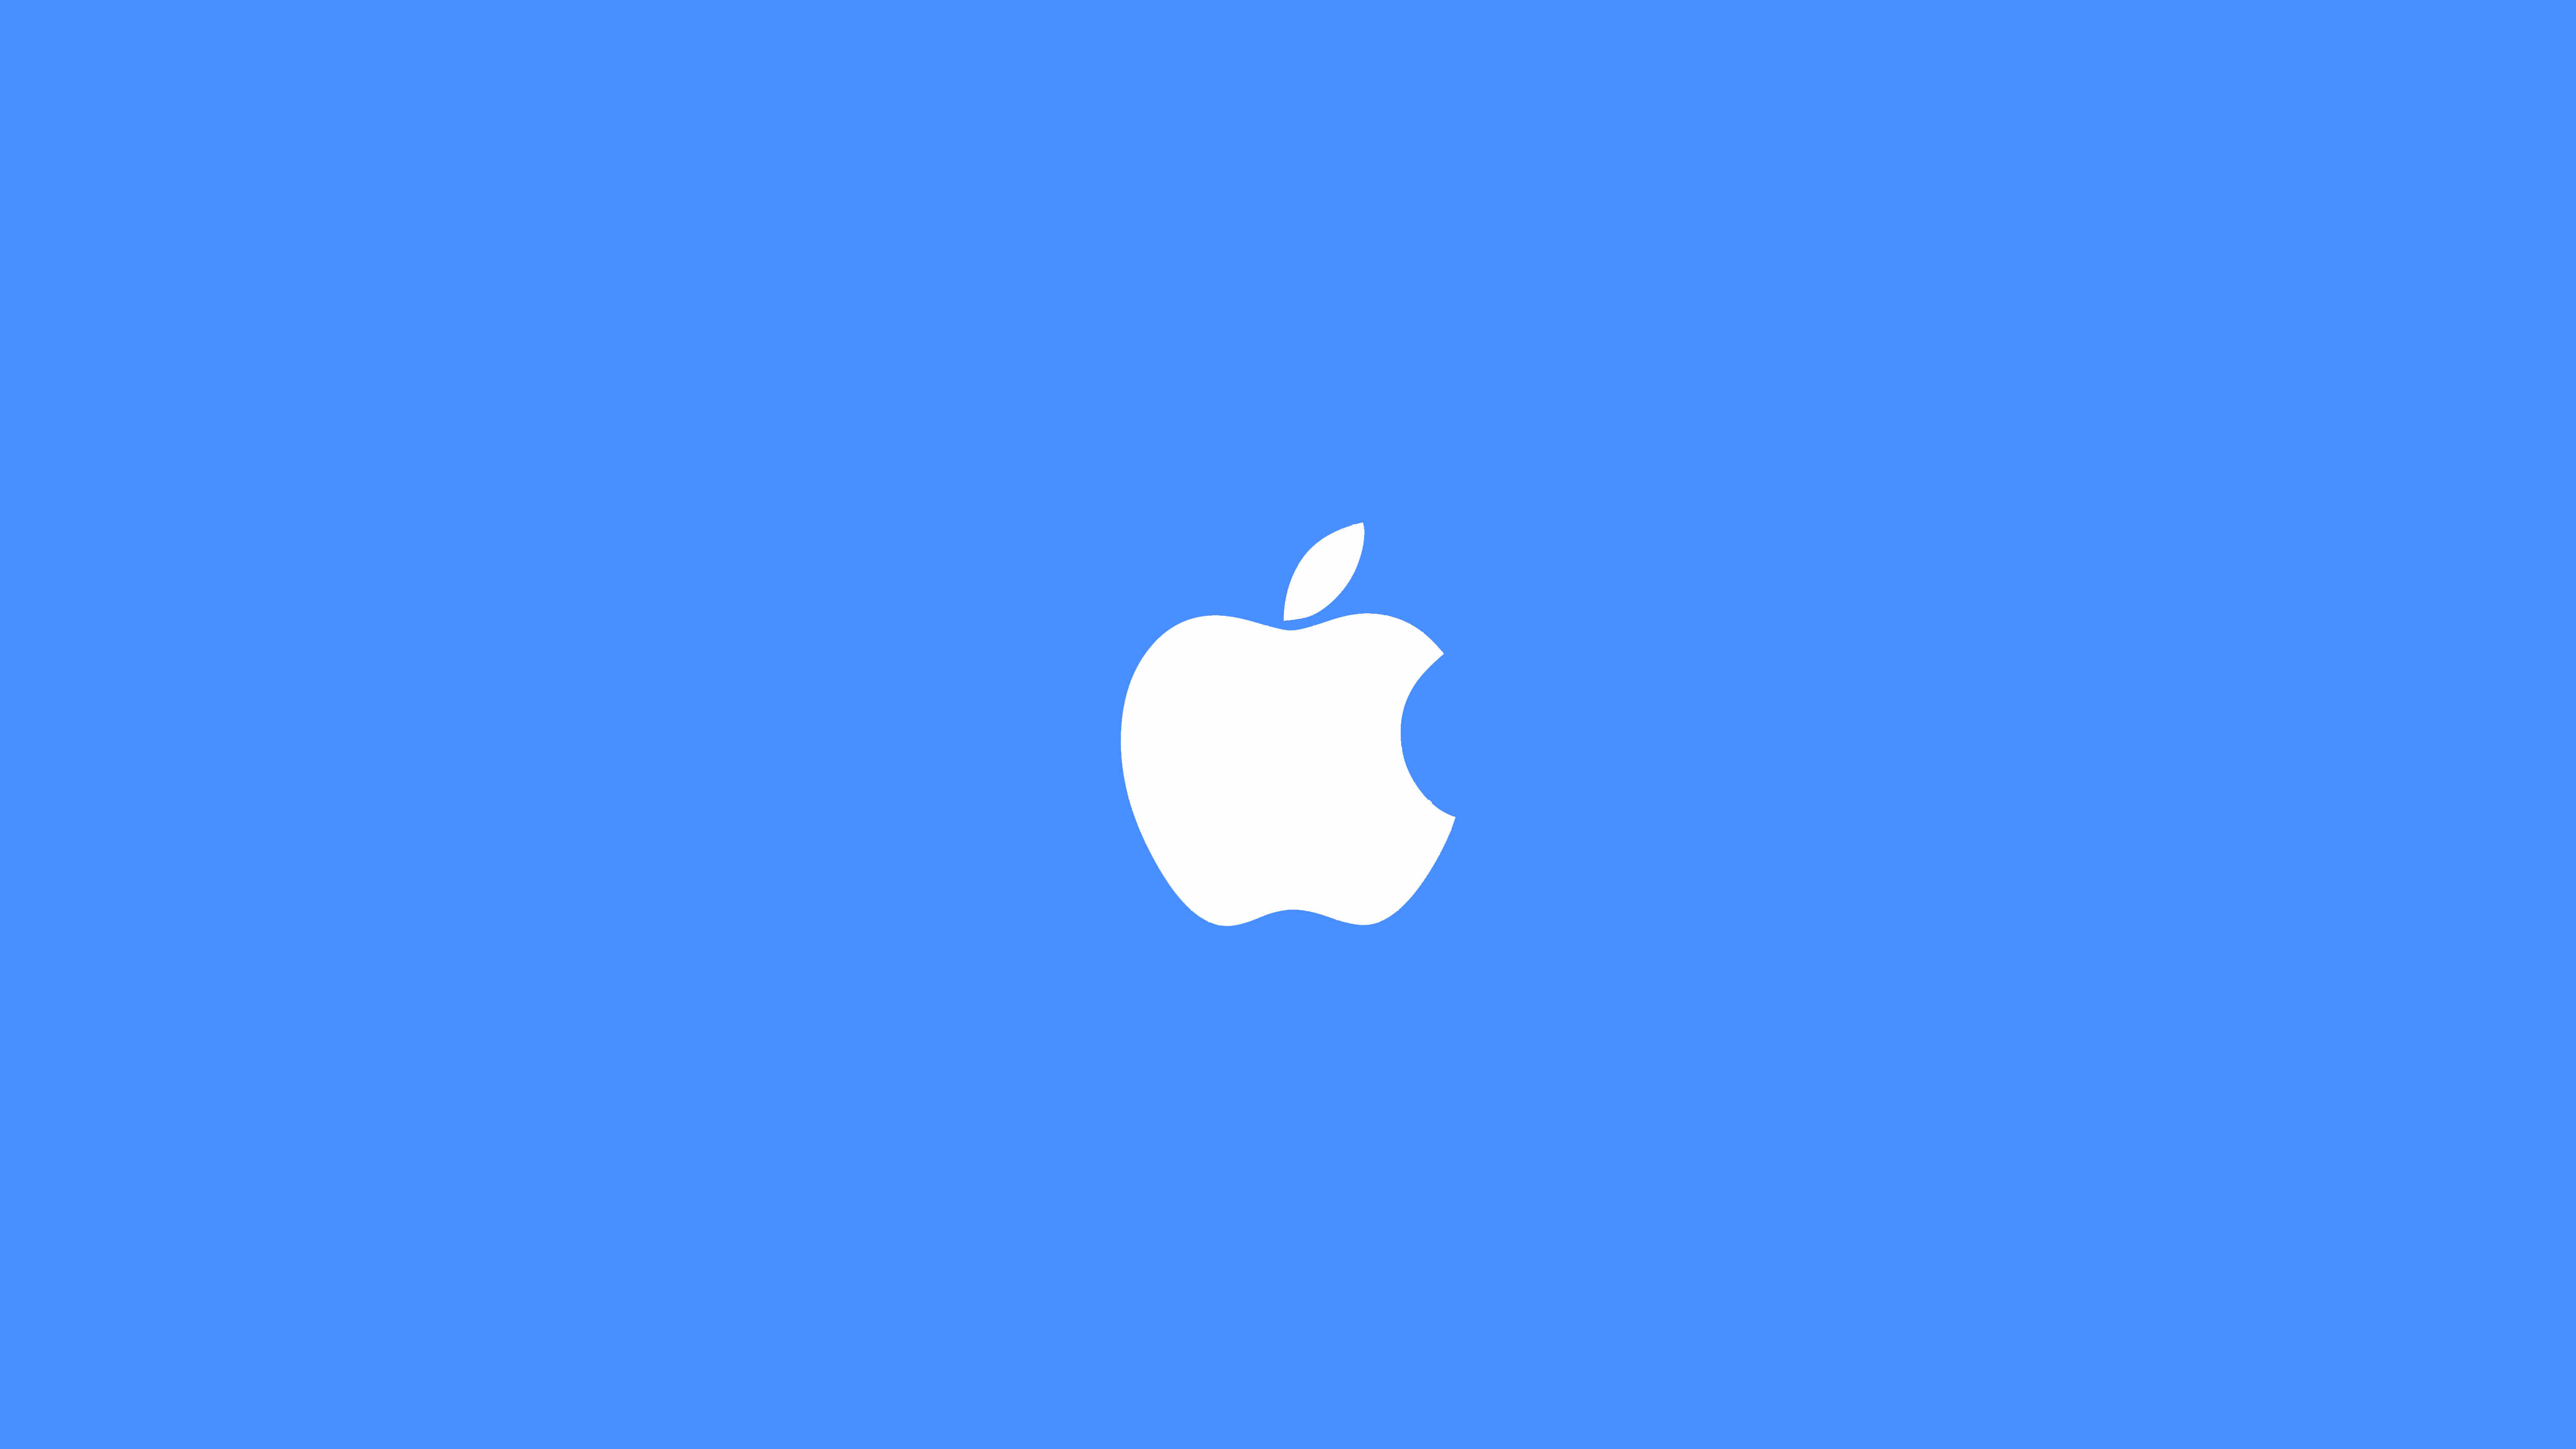 Related Wallpapers Apple Logo Blue